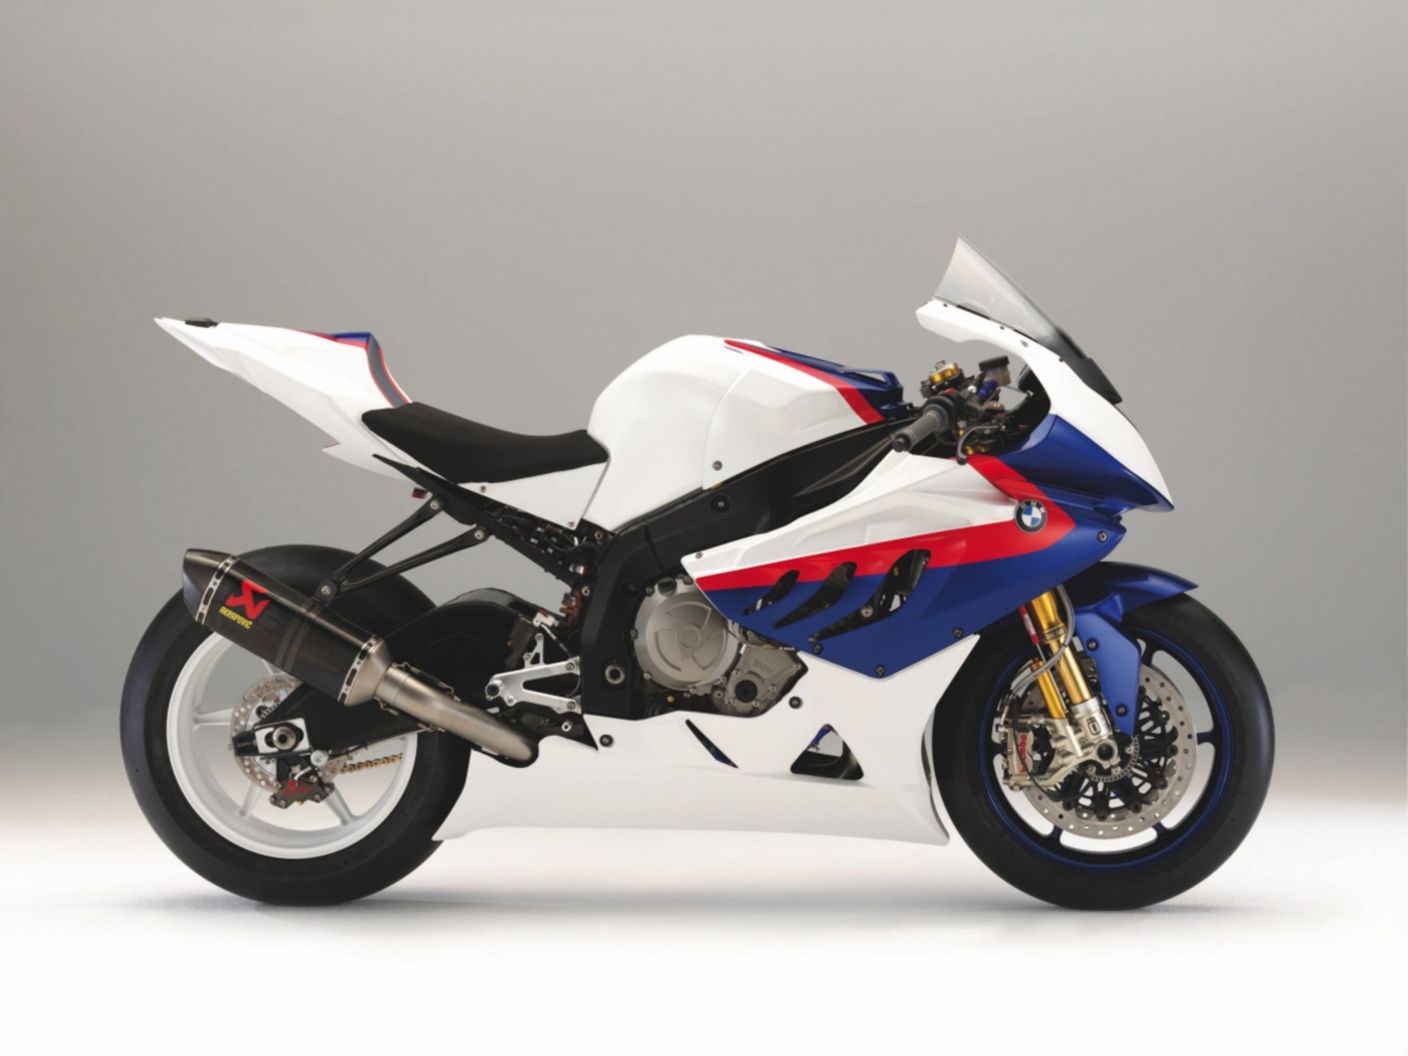 Download free HD BMW S 1000 Rr Race Bike Normal Wallpaper, image